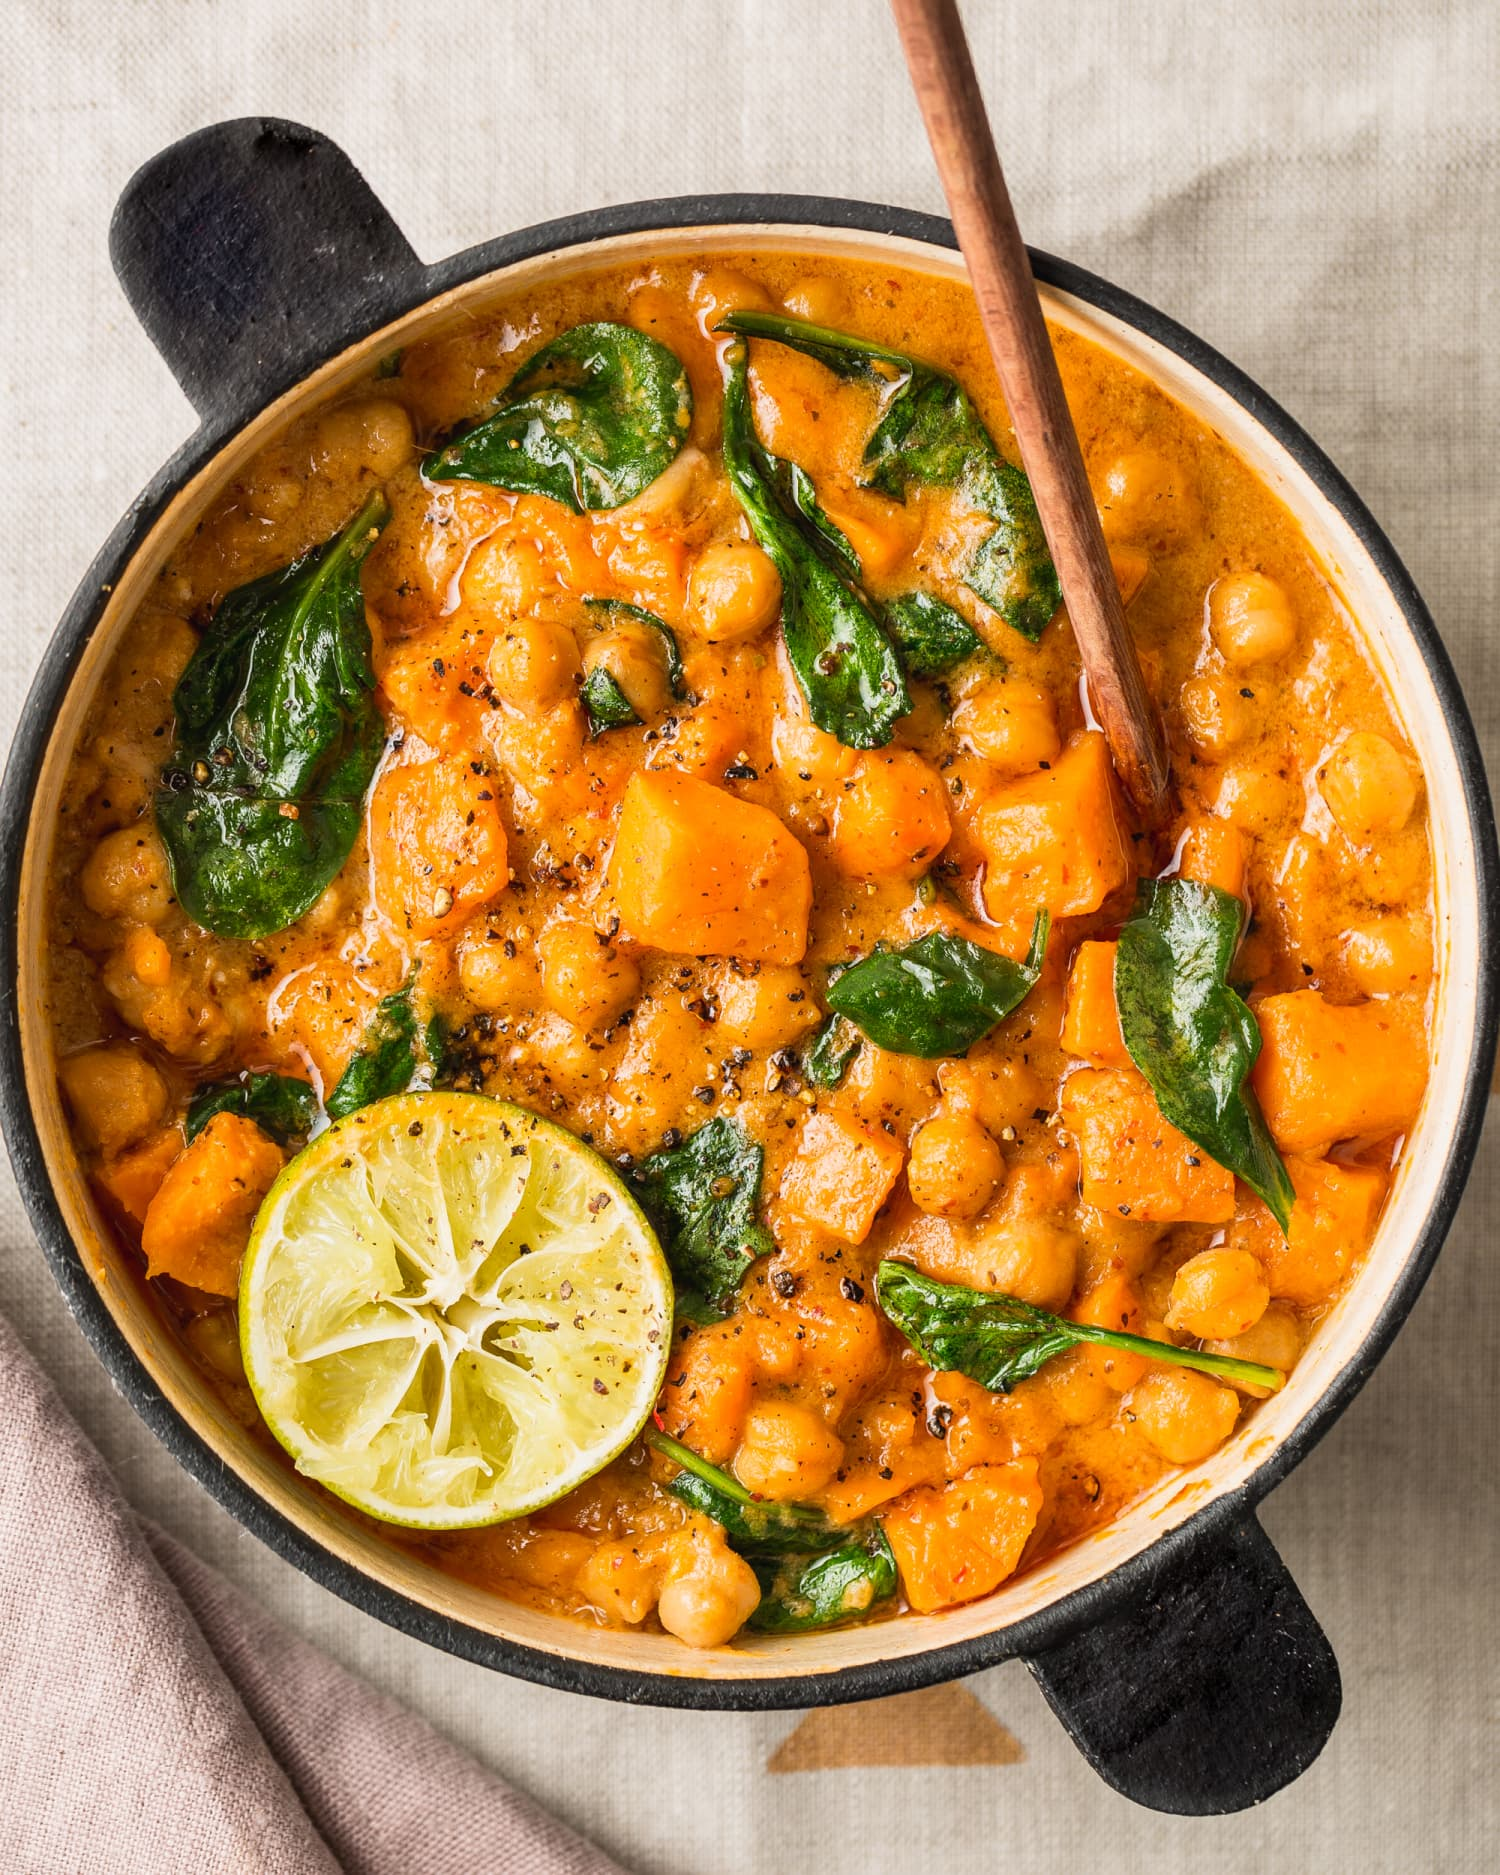 10 Easy Meatless Meals to Memorize